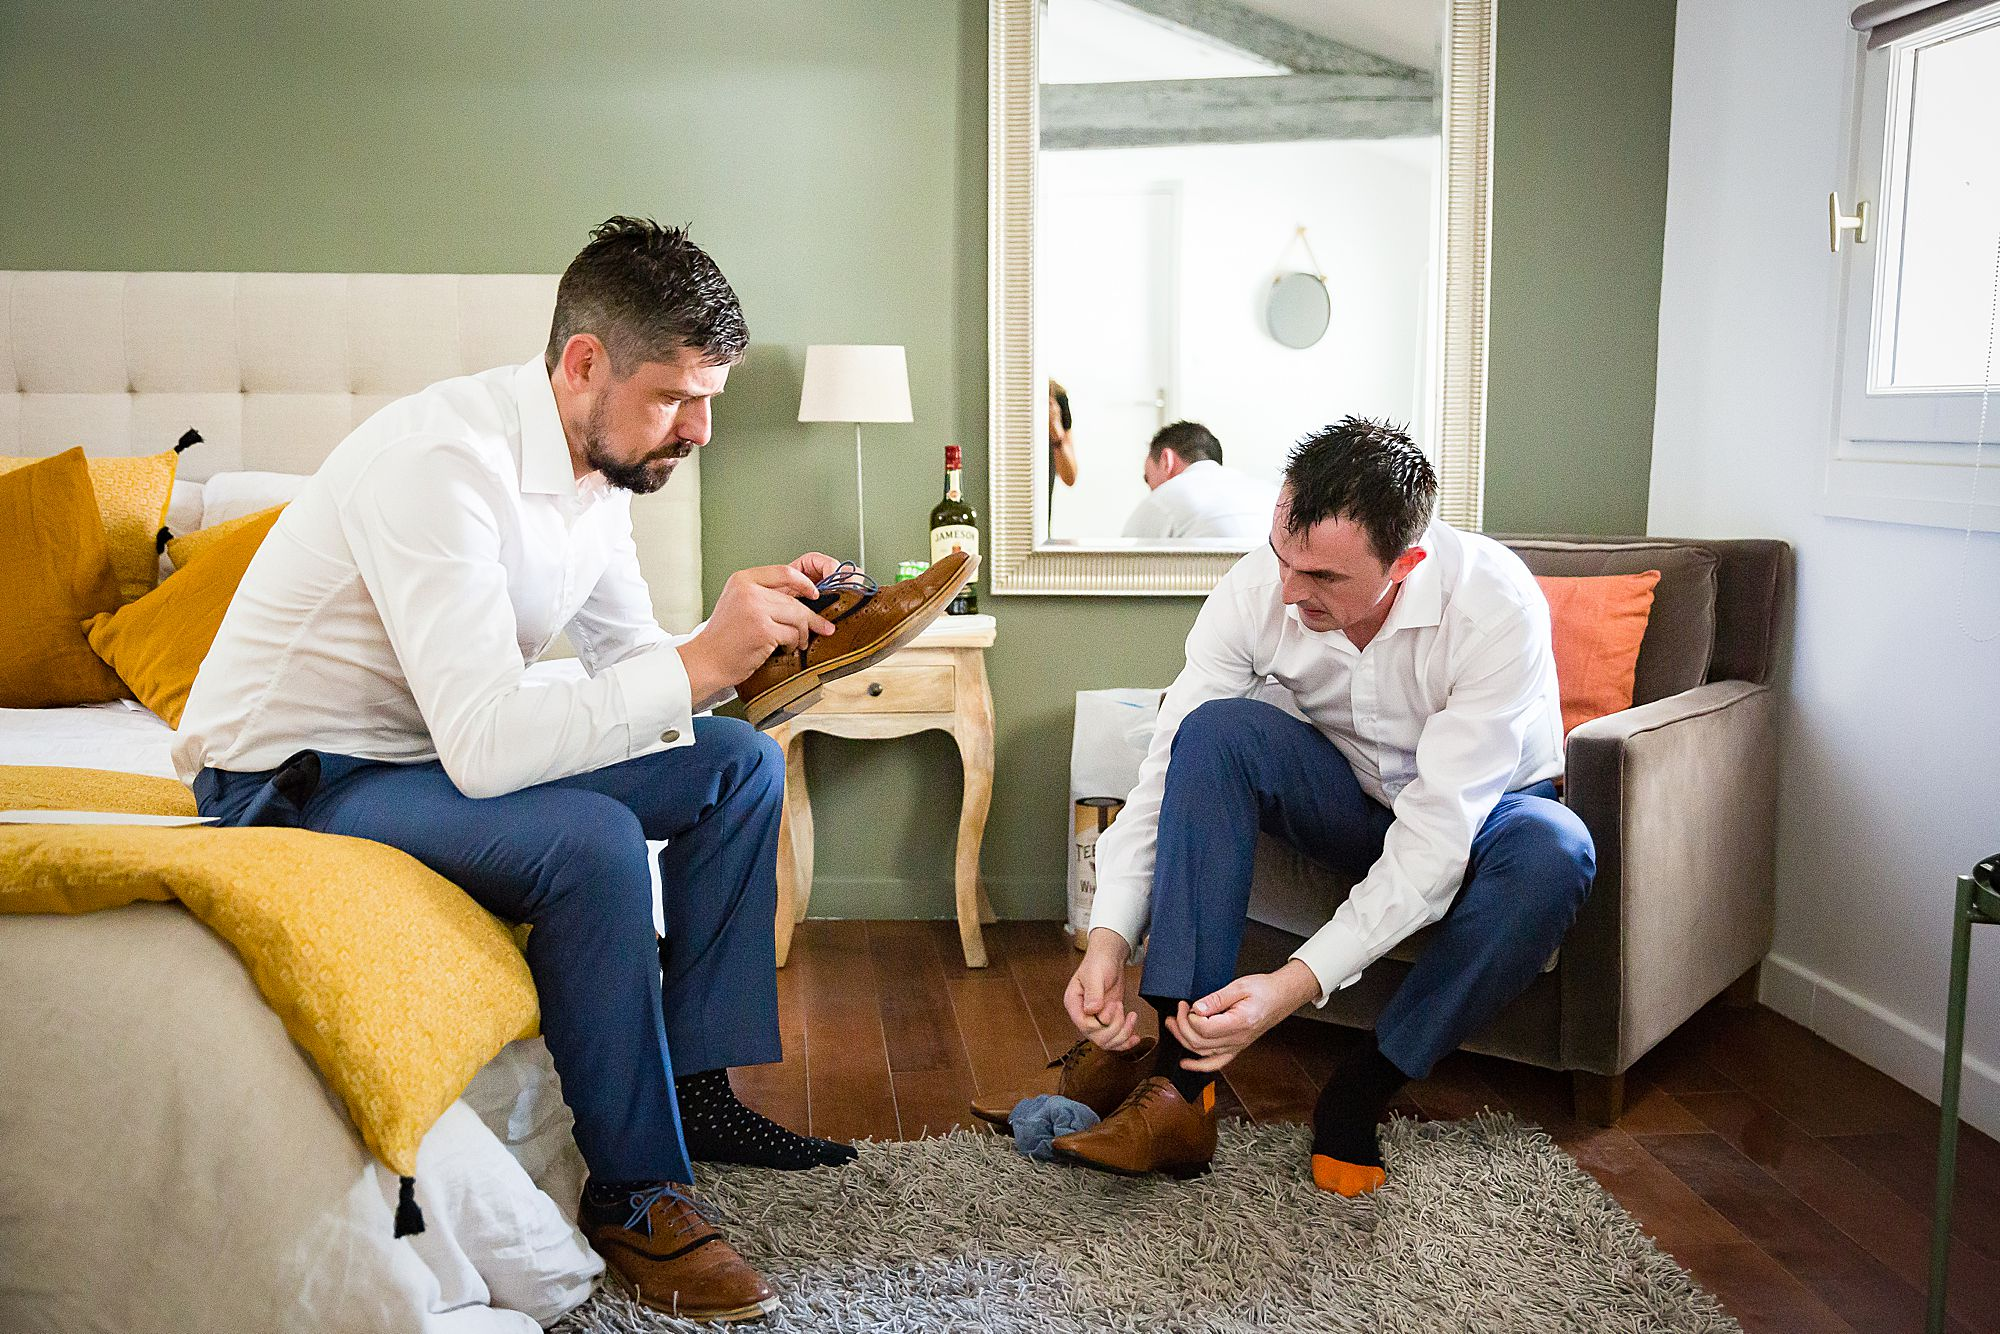 The groomsmen put on shoes